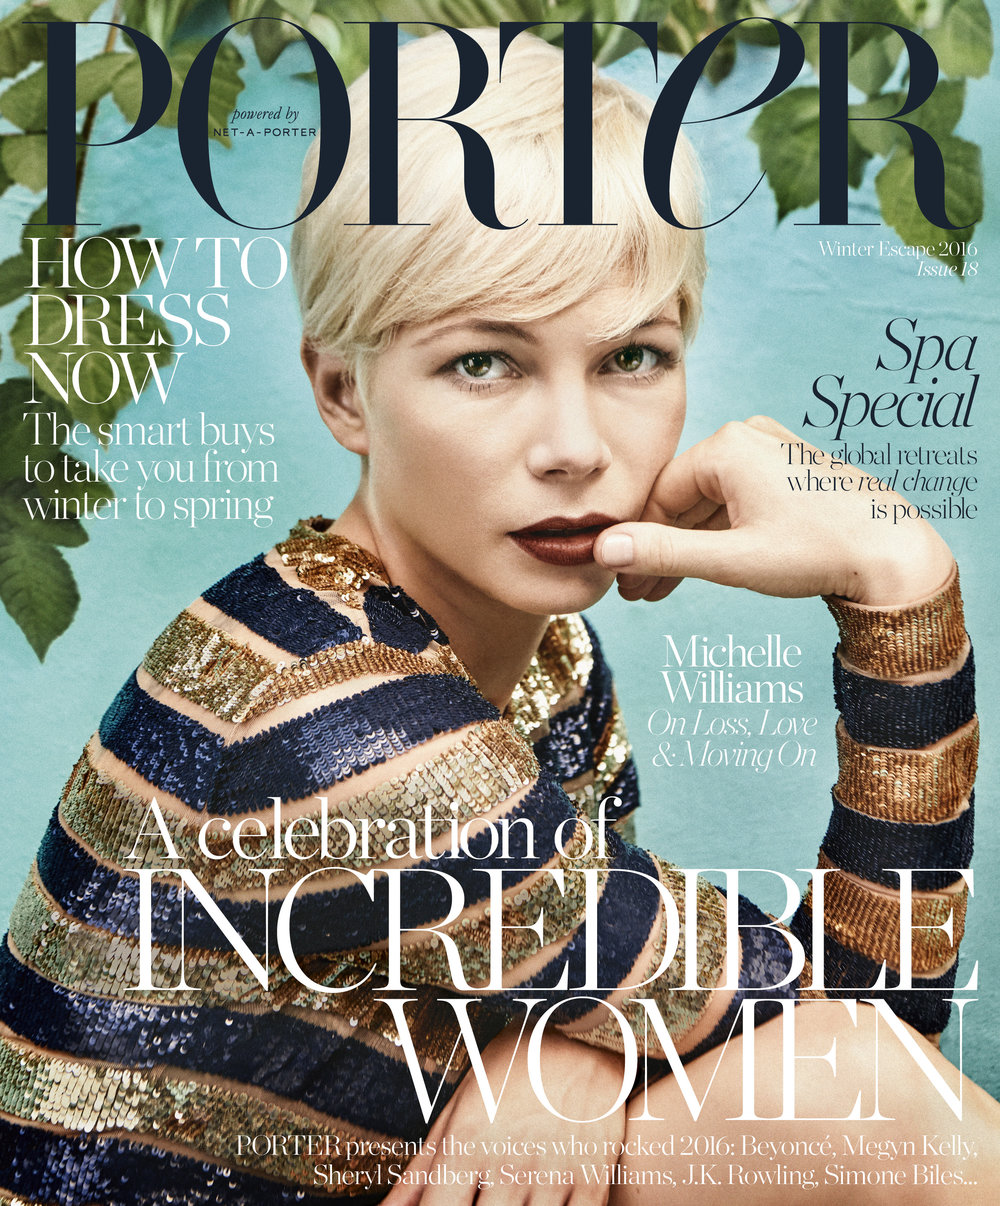 Michelle-Williams-wears-dress-by-Michael-Kors-photographed-by-Ryan-McGinley-for-PORTER..jpg